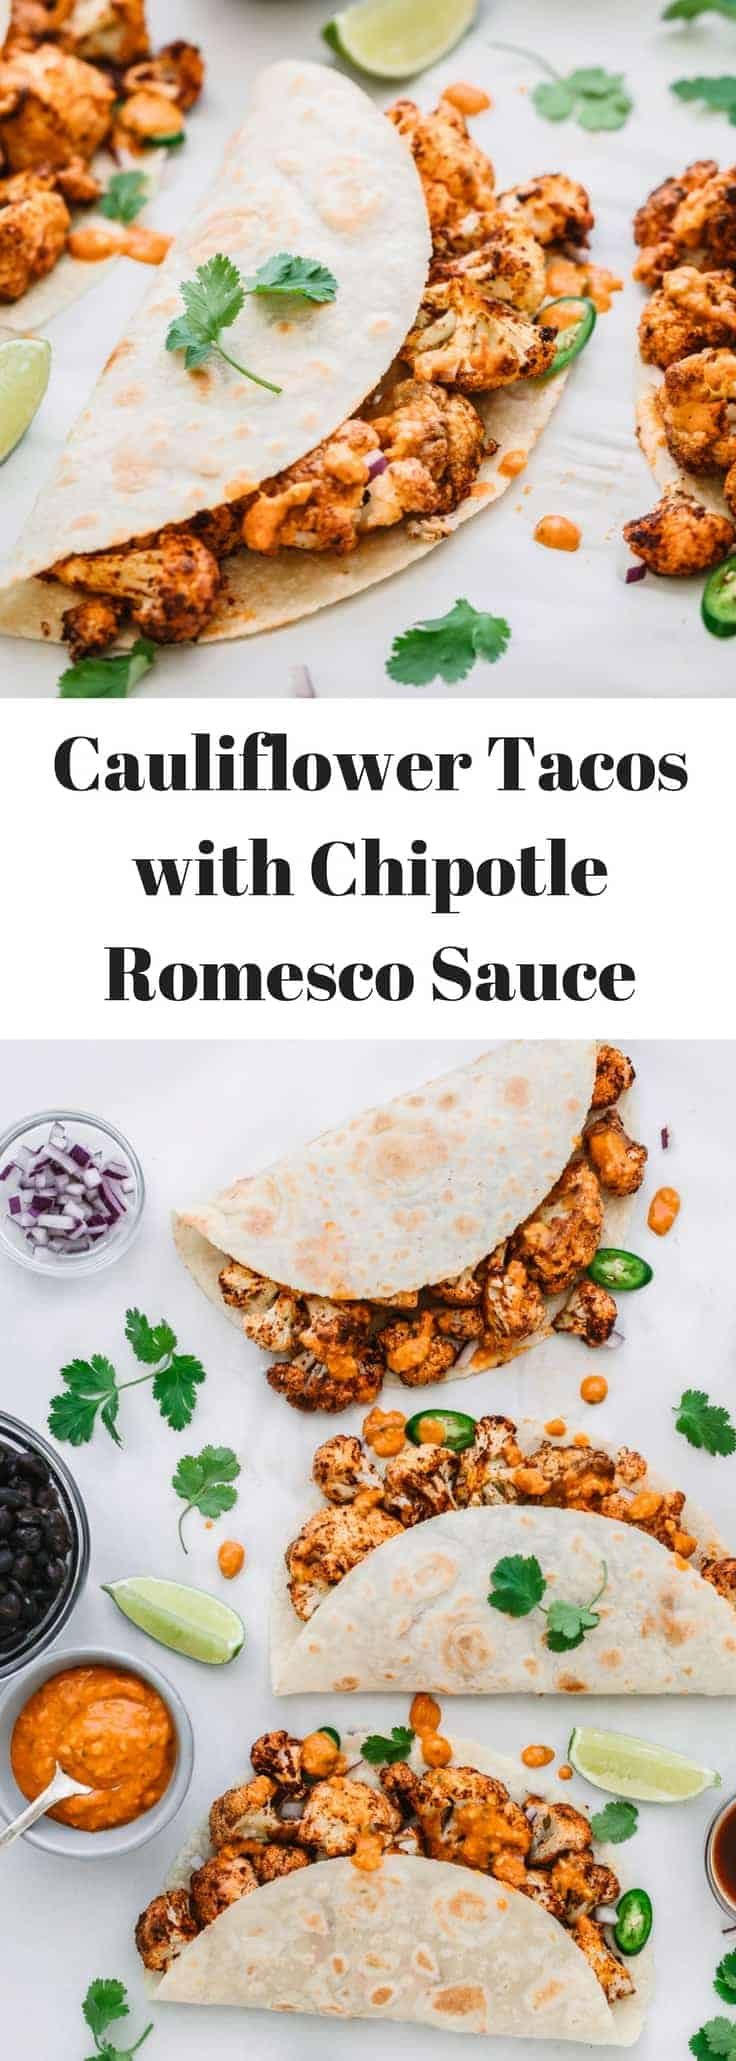 Roasted Cauliflower Tacos with Chipotle Romesco Sauce